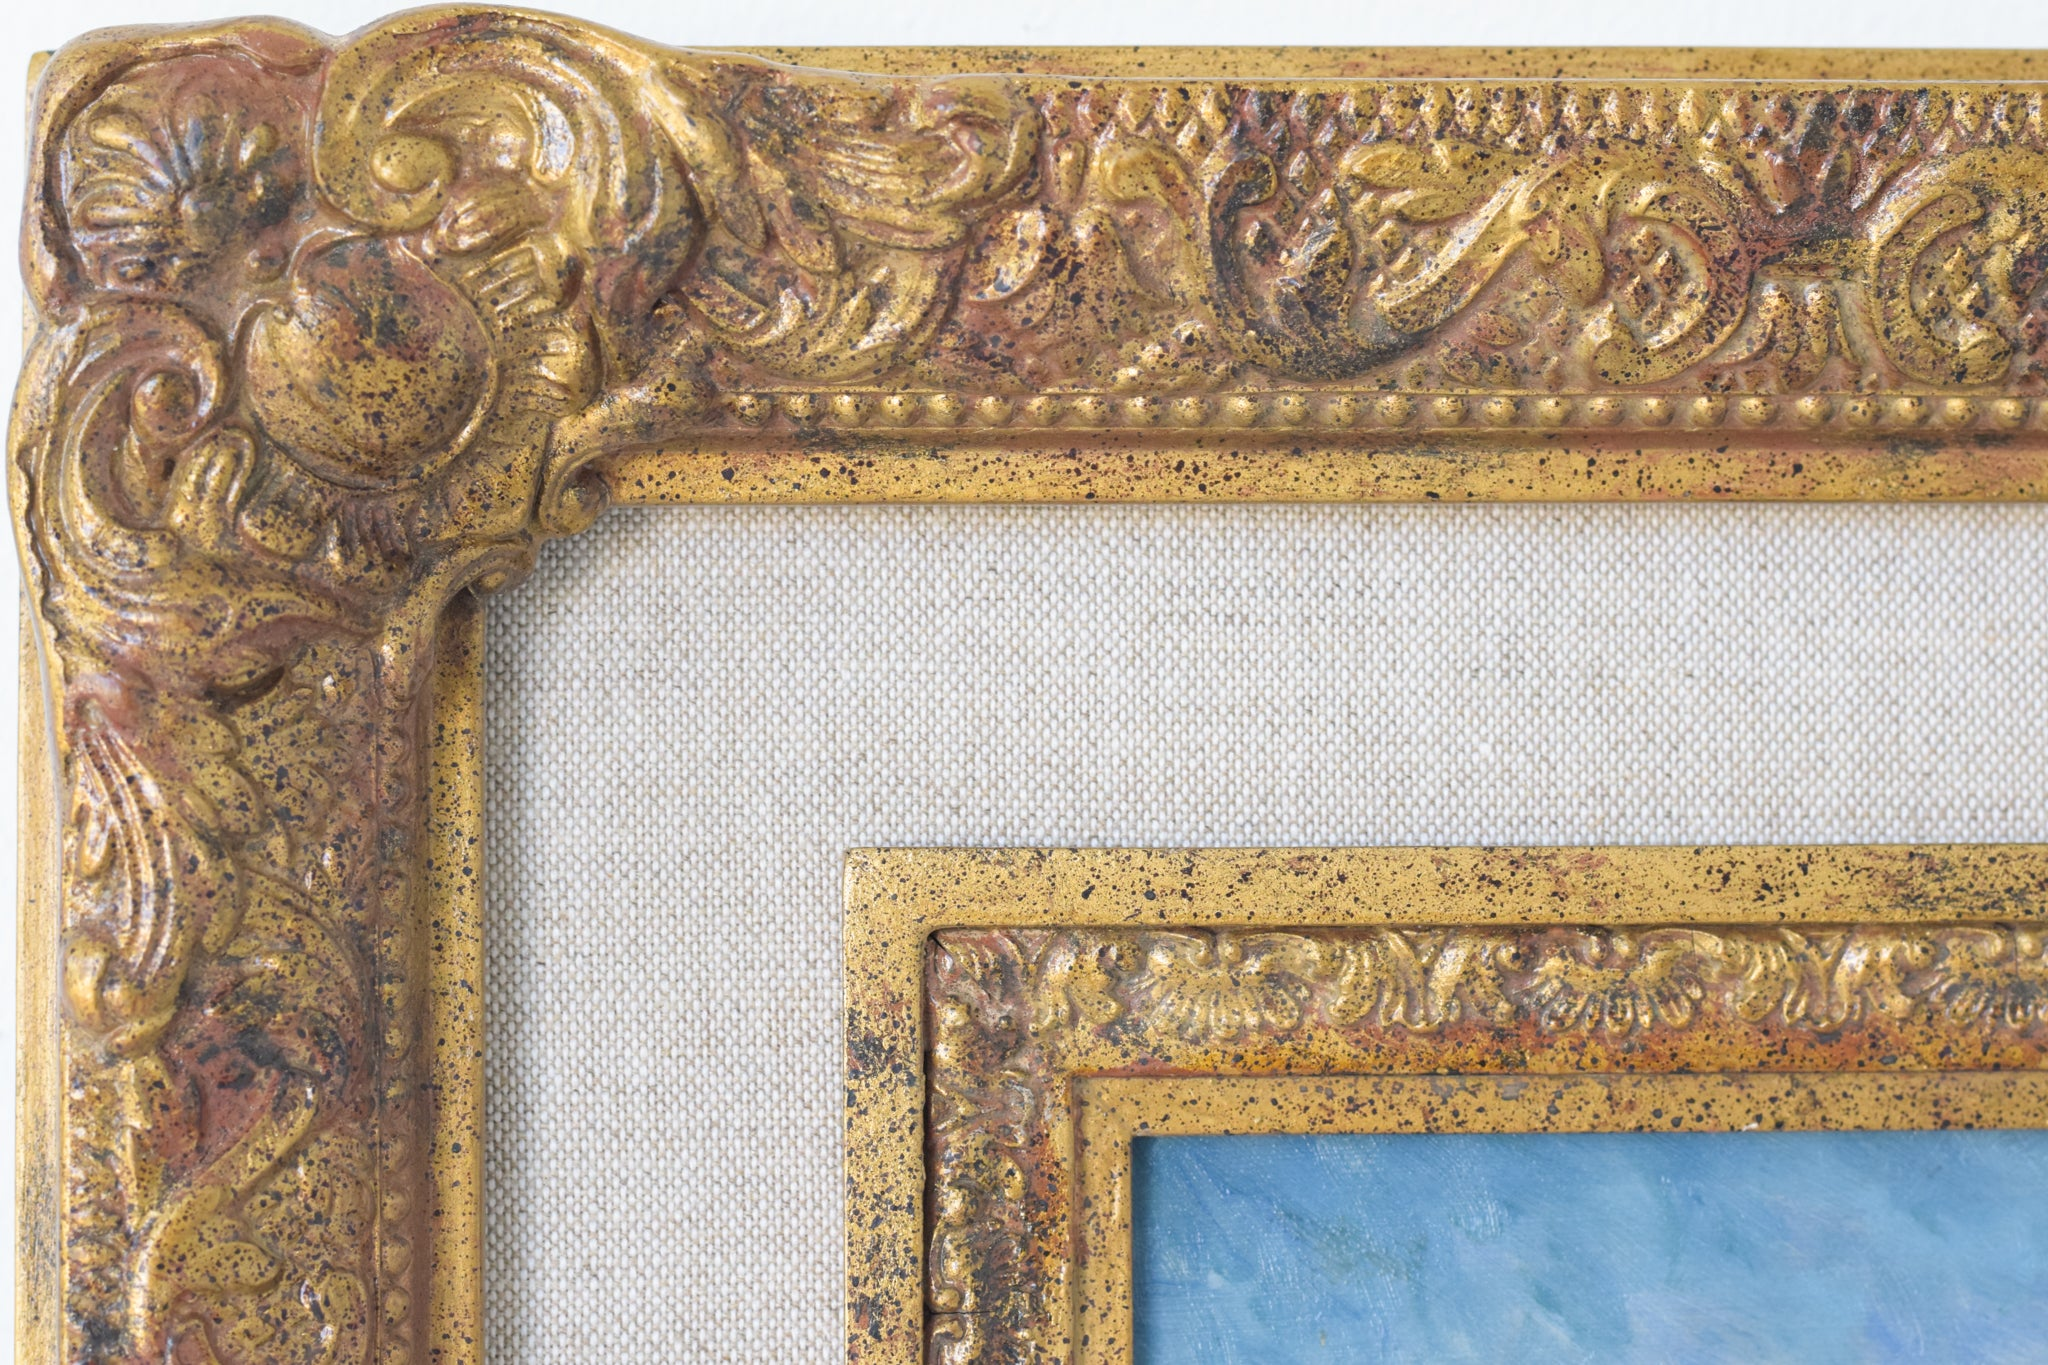 Coastal Landscape with Sailings Boats and Flowers_Frame Detail